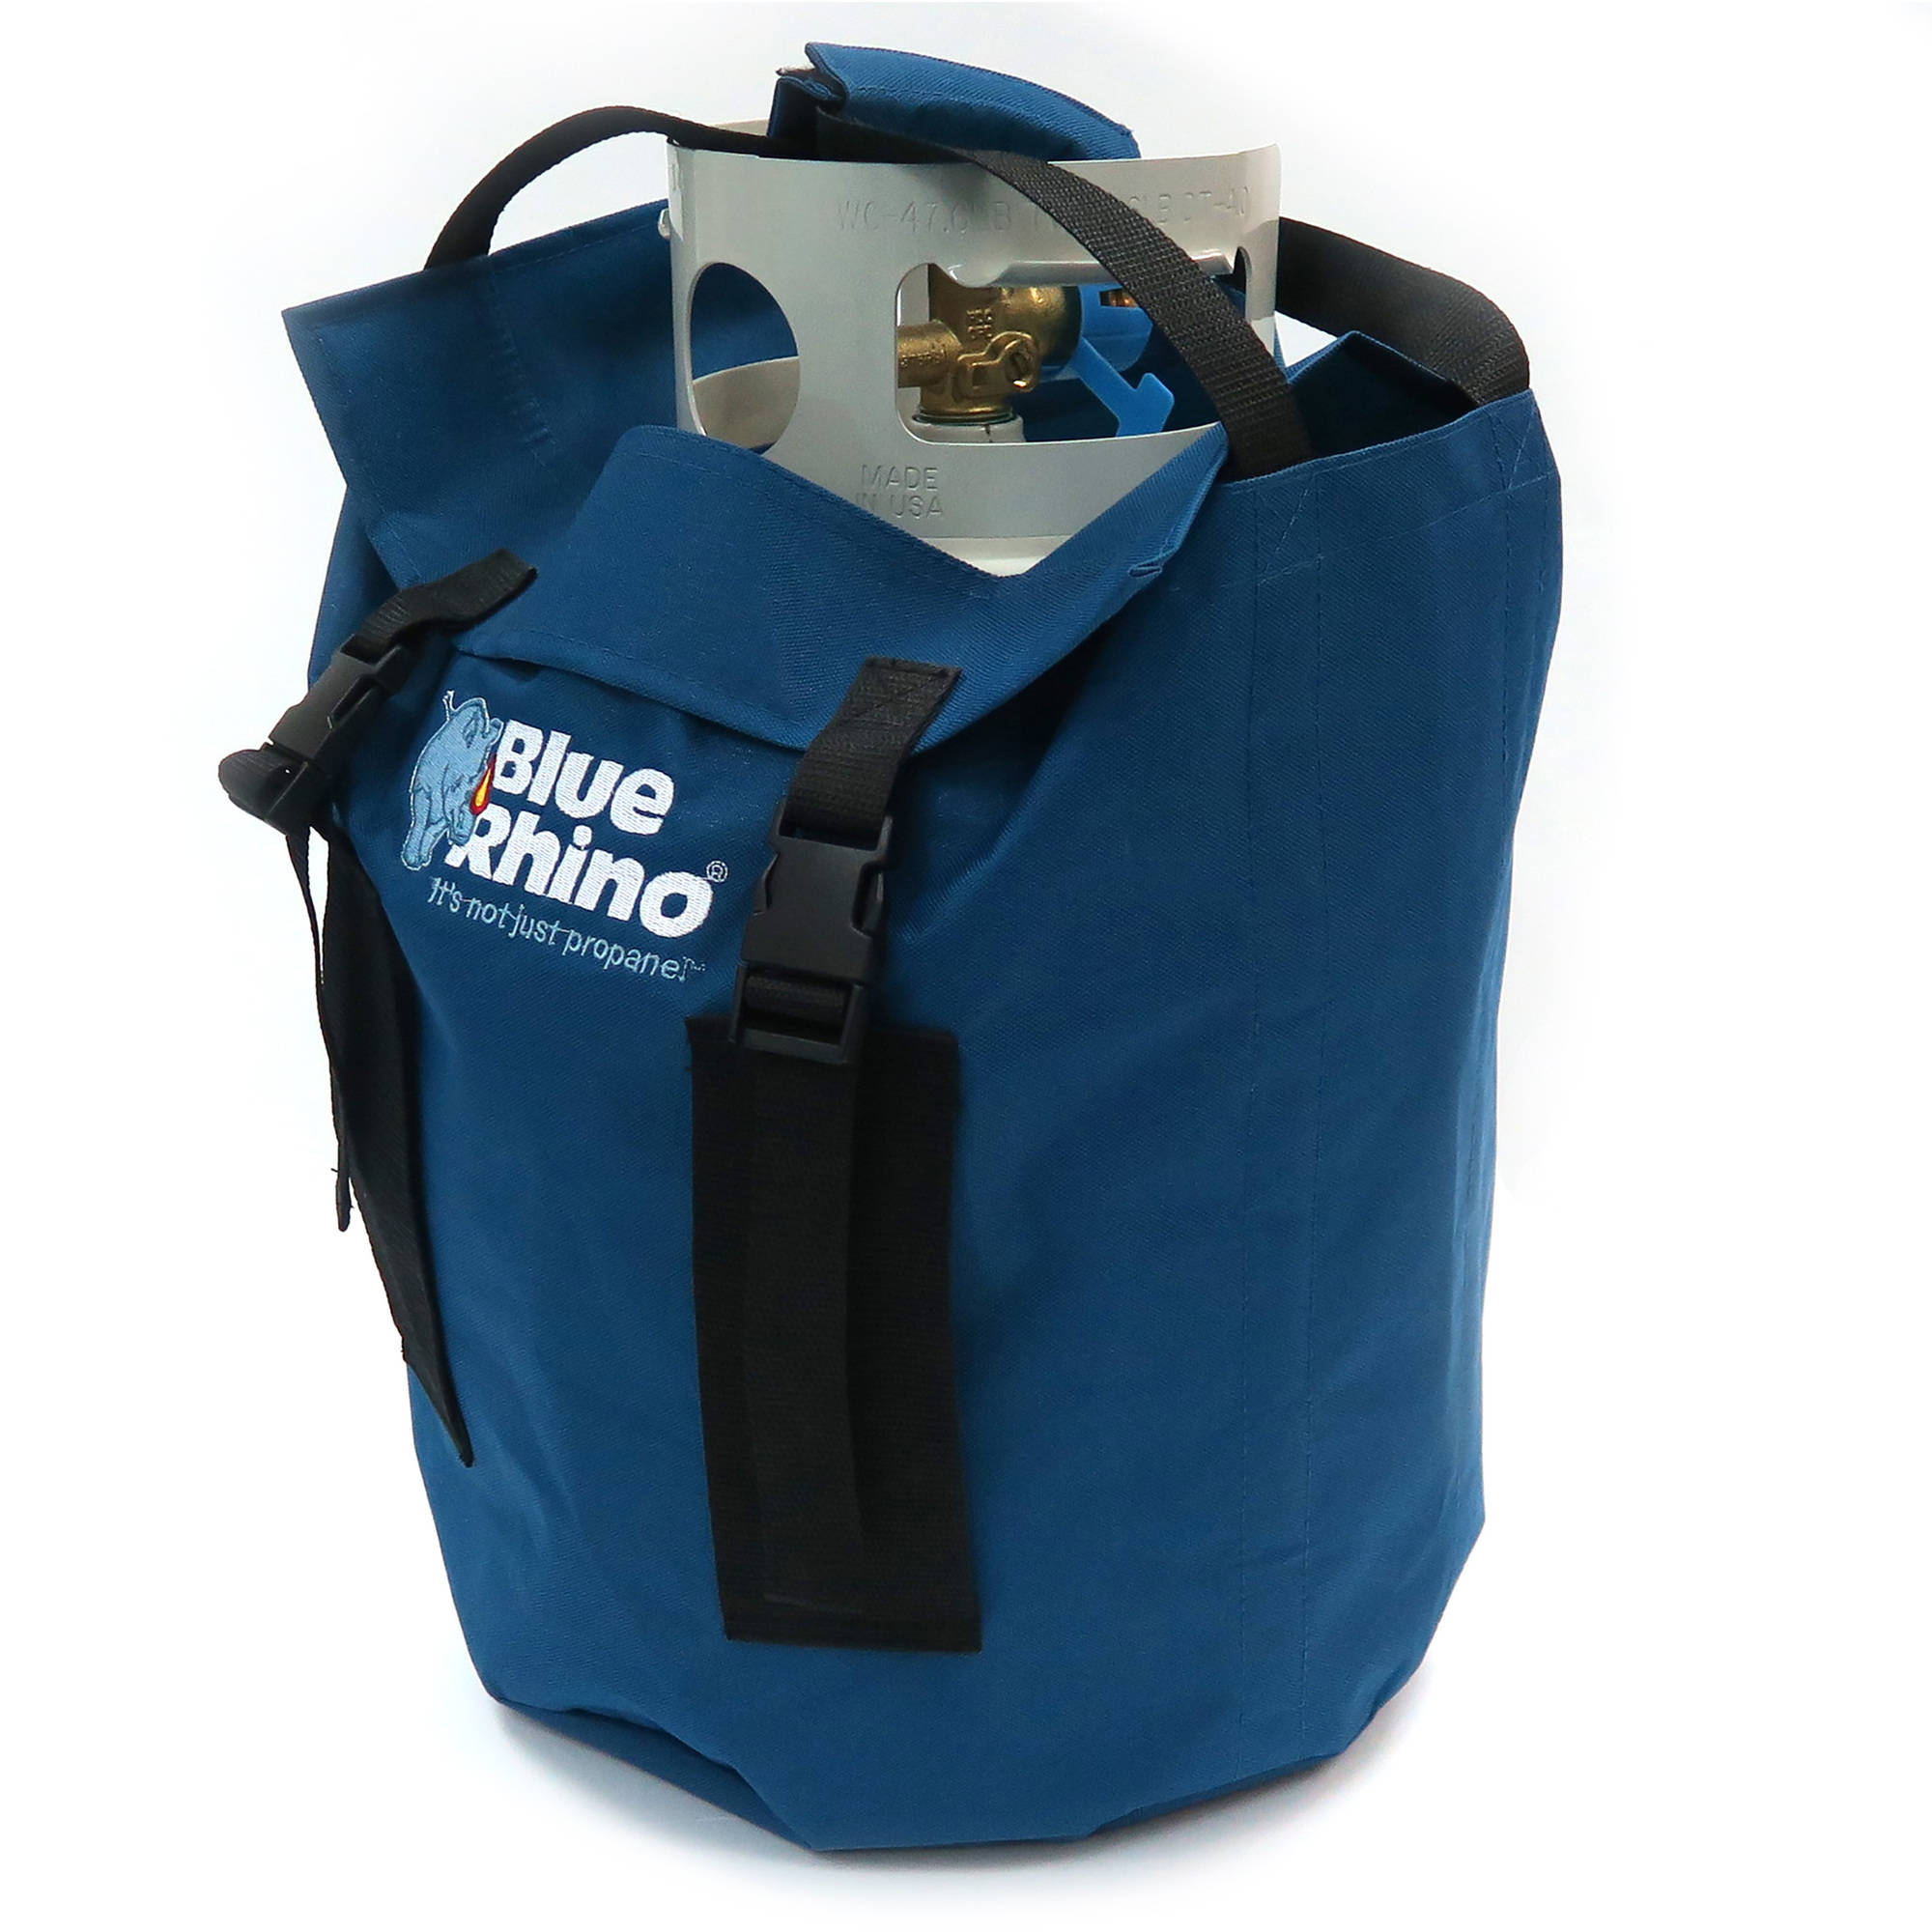 Blue Rhino Propane Carrying Bag